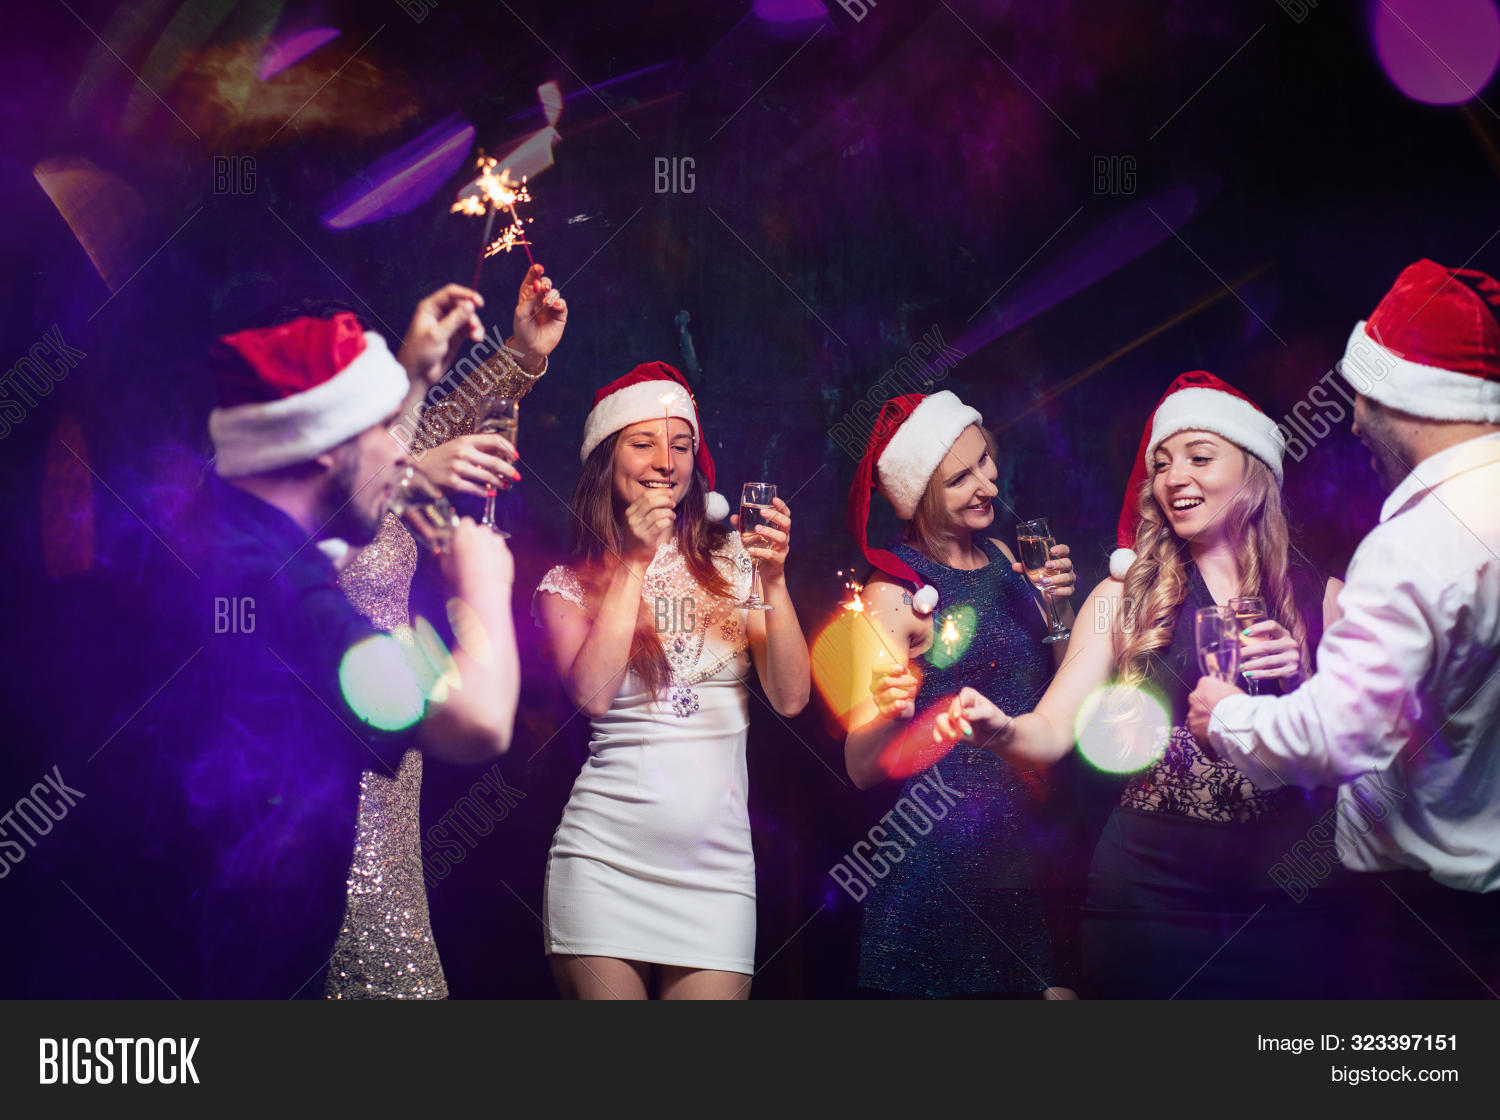 Christmas Dance Party Image Photo Free Trial Bigstock